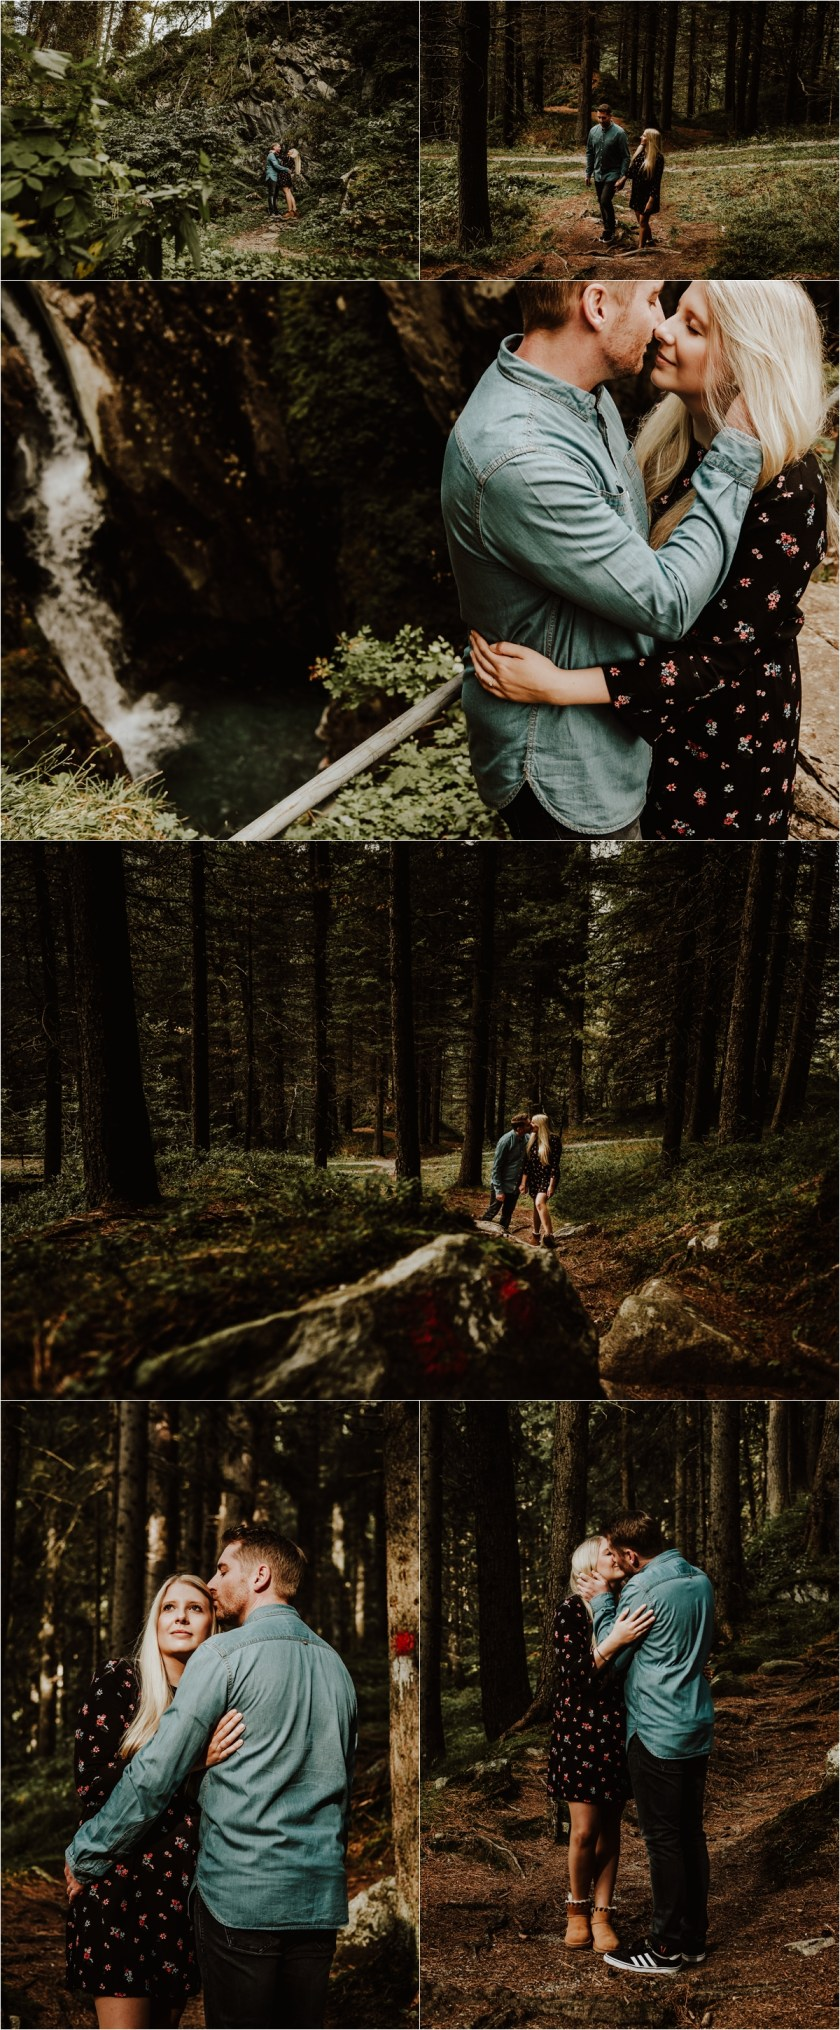 Sarah & Kai walk holding hands through the woods in Hintertux by Wild Connections Photography